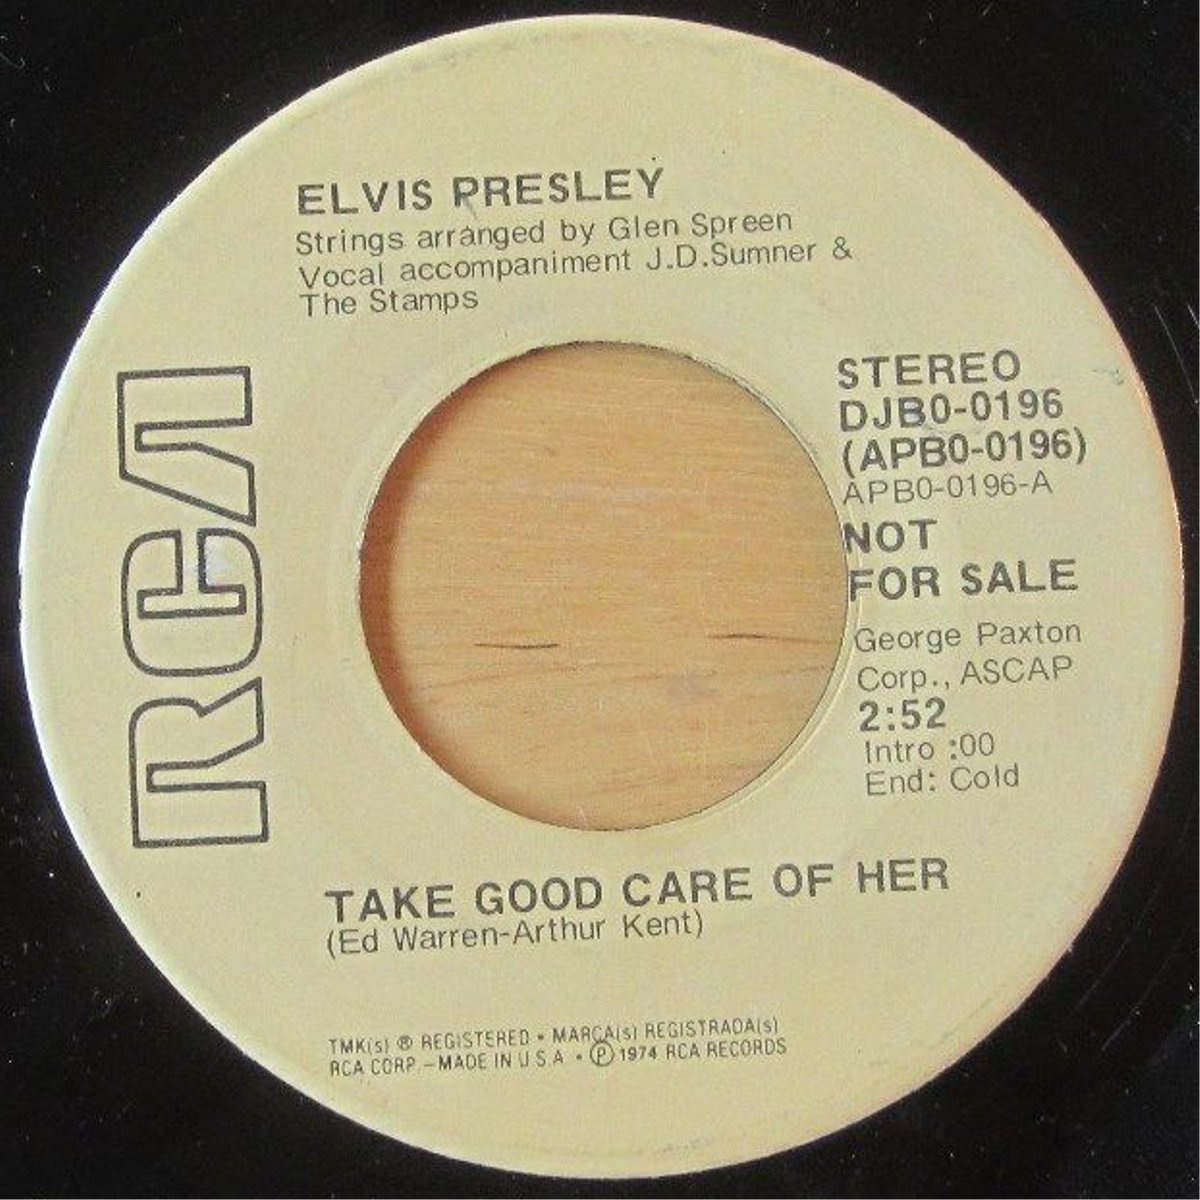 I've Got A Thing About You Baby / Take Good Care Of Her Djb0-0196d5dlbz